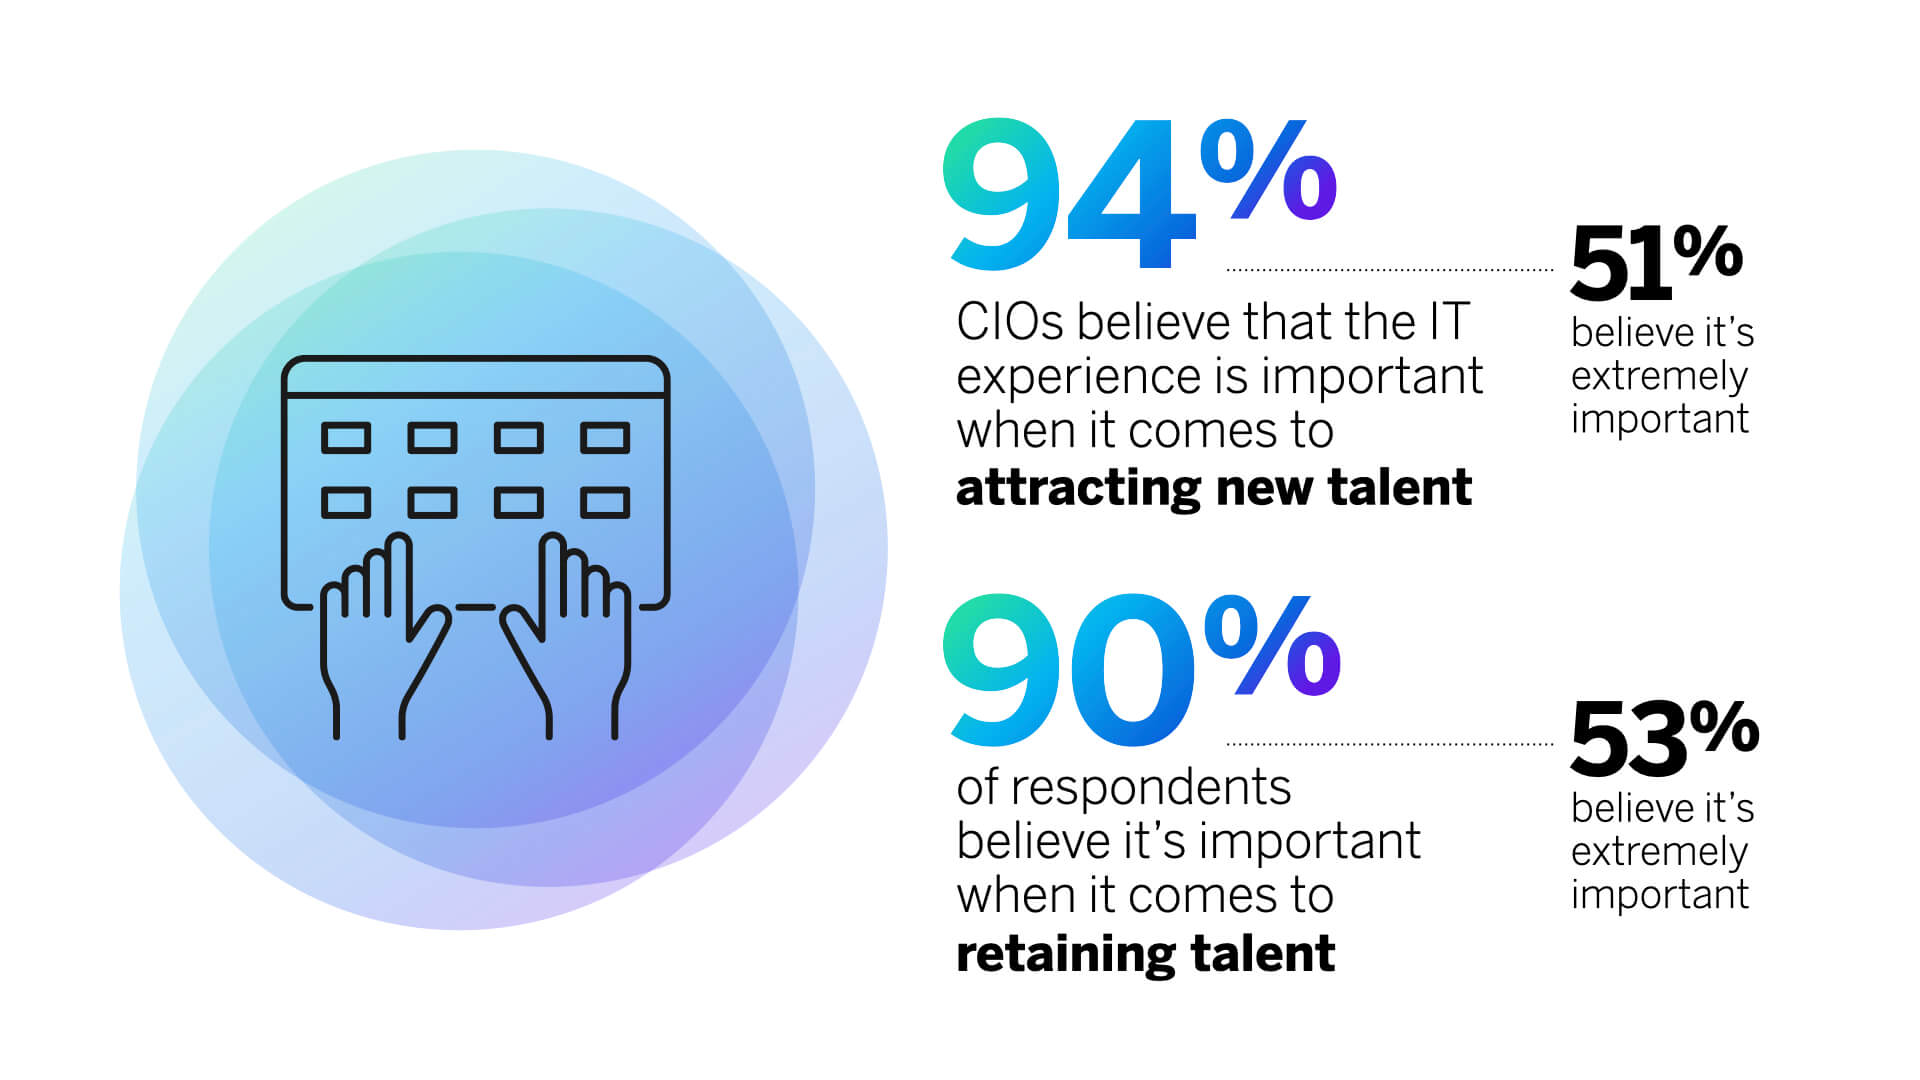 IT experience important to attracting new talent and retaining talent